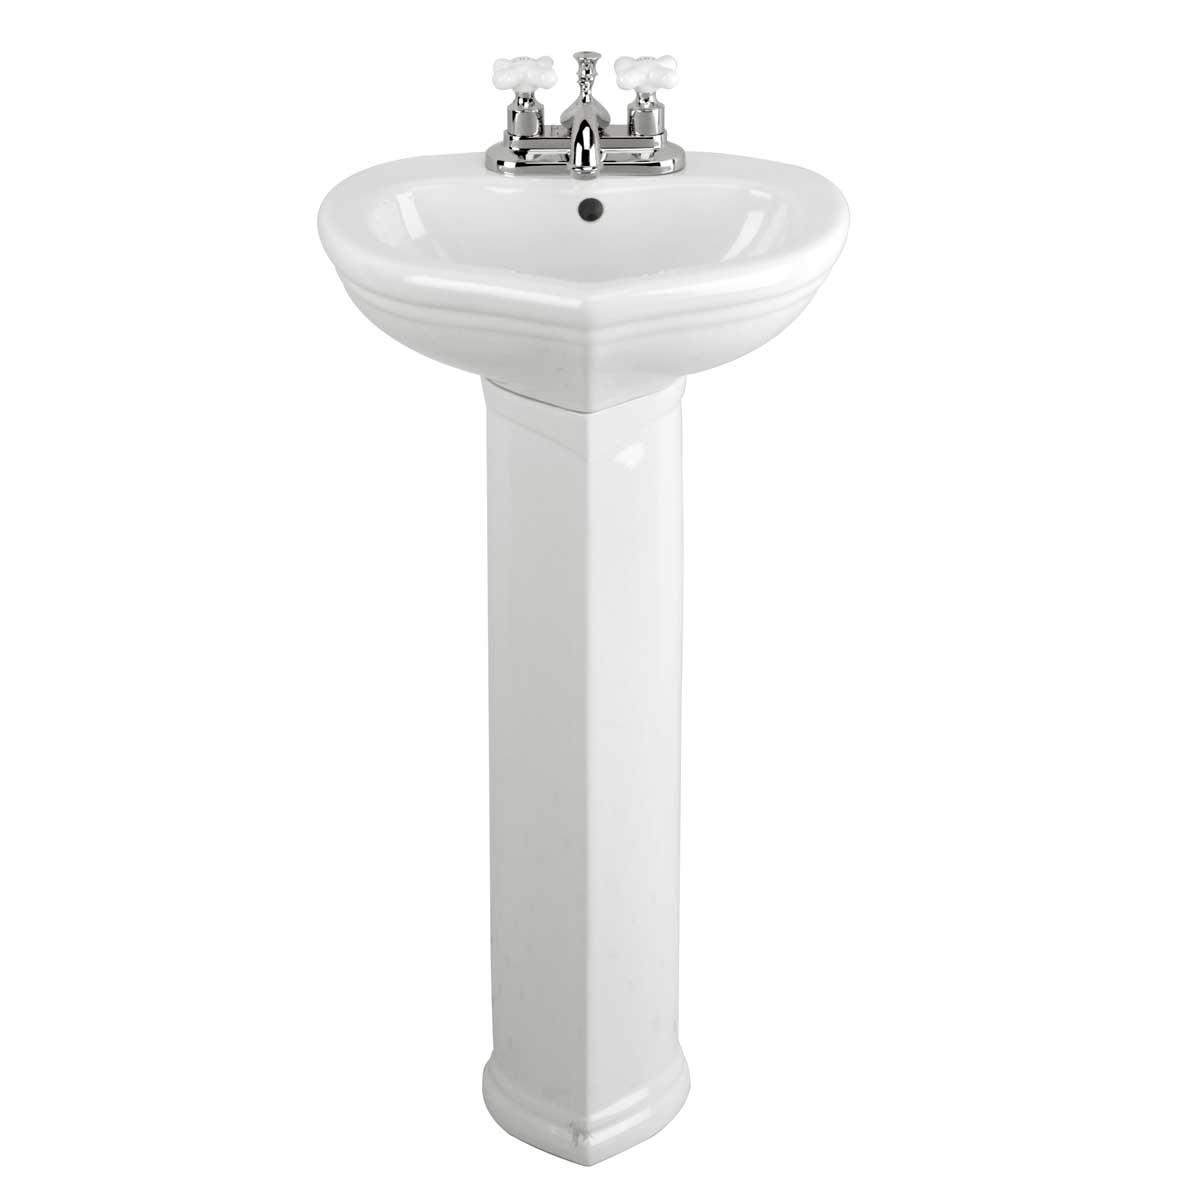 Small Basin With Pedestal : Small Pedestal Sink White Bathroom China Sweet Heart